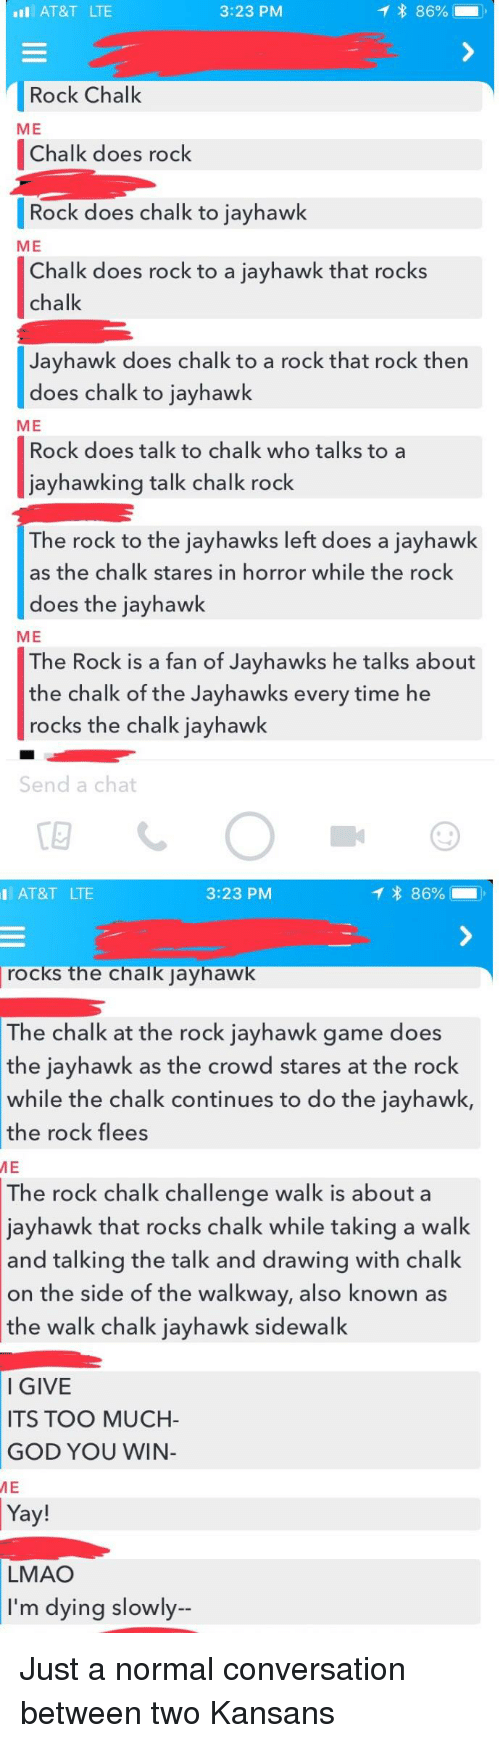 jayhawk: AT&T LTE  3:23 PM  Rock Chalk  ME  Chalk does rock  Rock does chalk to jayhawk  ME  Chalk does rock to a jayhawk that rocks  chalk  Jayhawk does chalk to a rock that rock then  does chalk to jayhawk  ME  Rock does talk to chalk who talks to a  jayhawking talk chalk rock  The rock to the jayhawks left does a jayhawk  as the chalk stares in horror while the rock  does the jayhawk  ME  he Rock is a fan of Jayhawks he talks about  the chalk of the Jayhawks every time he  rocks the chalk jayhawk  Send a chat  I AT&T LTE  3:23 PM  rocks the chalk iavhaw  The chalk at the rock jayhawk game does  the jayhawk as the crowd stares at the rock  while the chalk continues to do the jayhawk,  the rock flees  ME  The rock chalk challenge walk is about a  jayhawk that rocks chalk while taking a walk  and talking the talk and drawing with chalk  on the side of the walkway, also known as  the walk chalk iavhawk sidewalk  l GIVE  ITS TOO MUCH-  GOD YOU WINN  ME  Ya  LMAO  I'm dying slowly